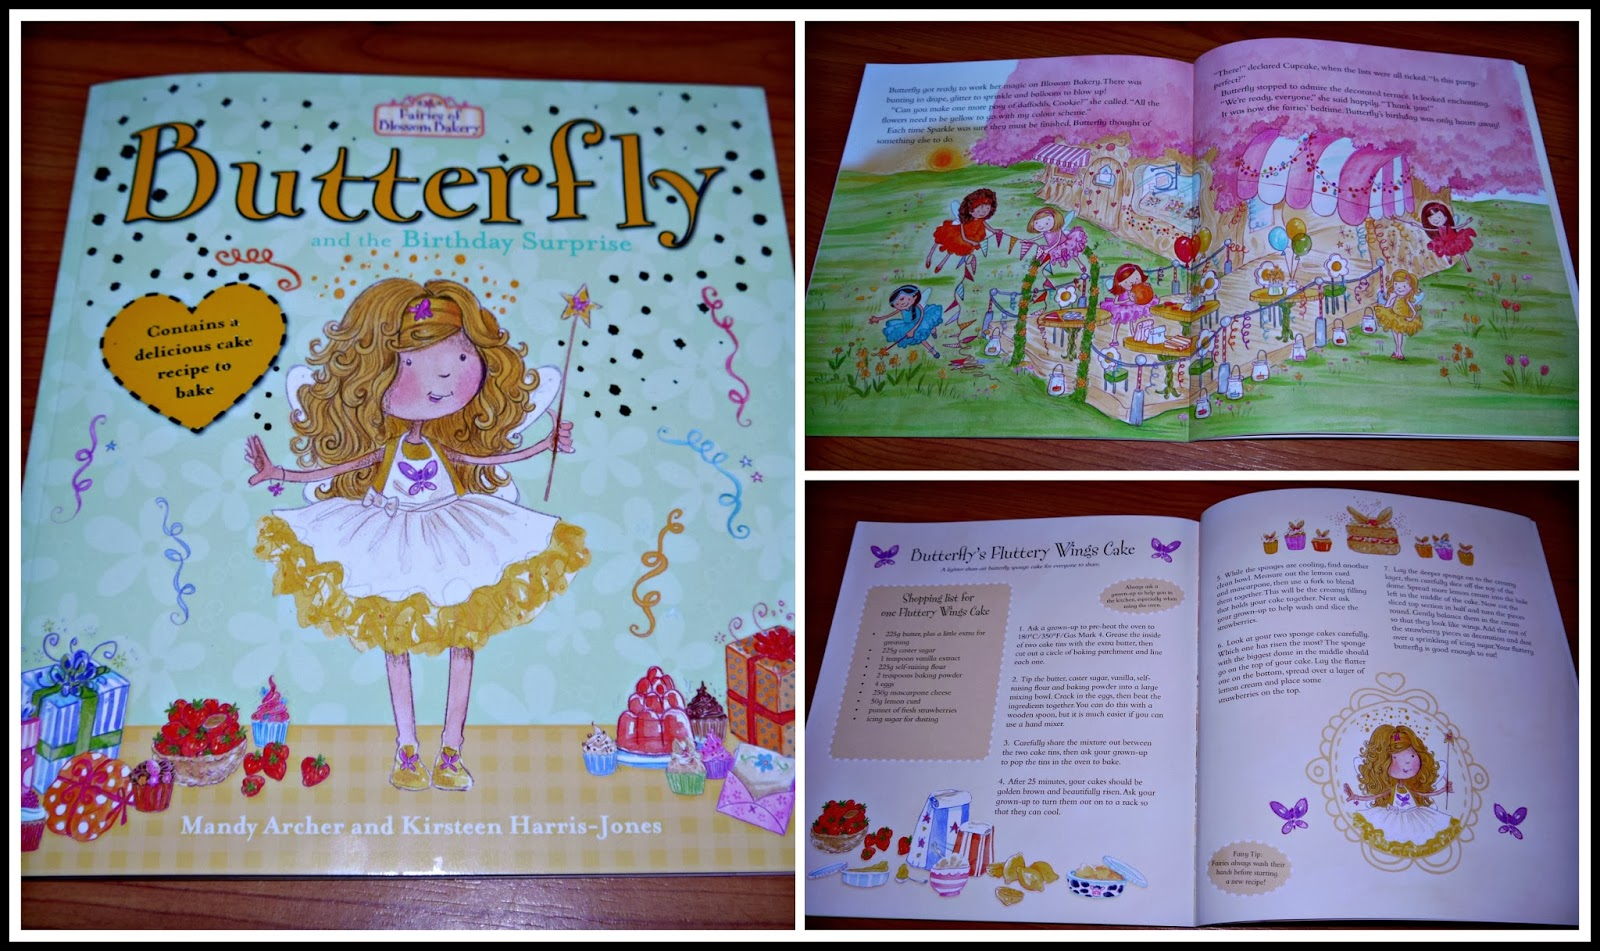 fairy, picture book, random house